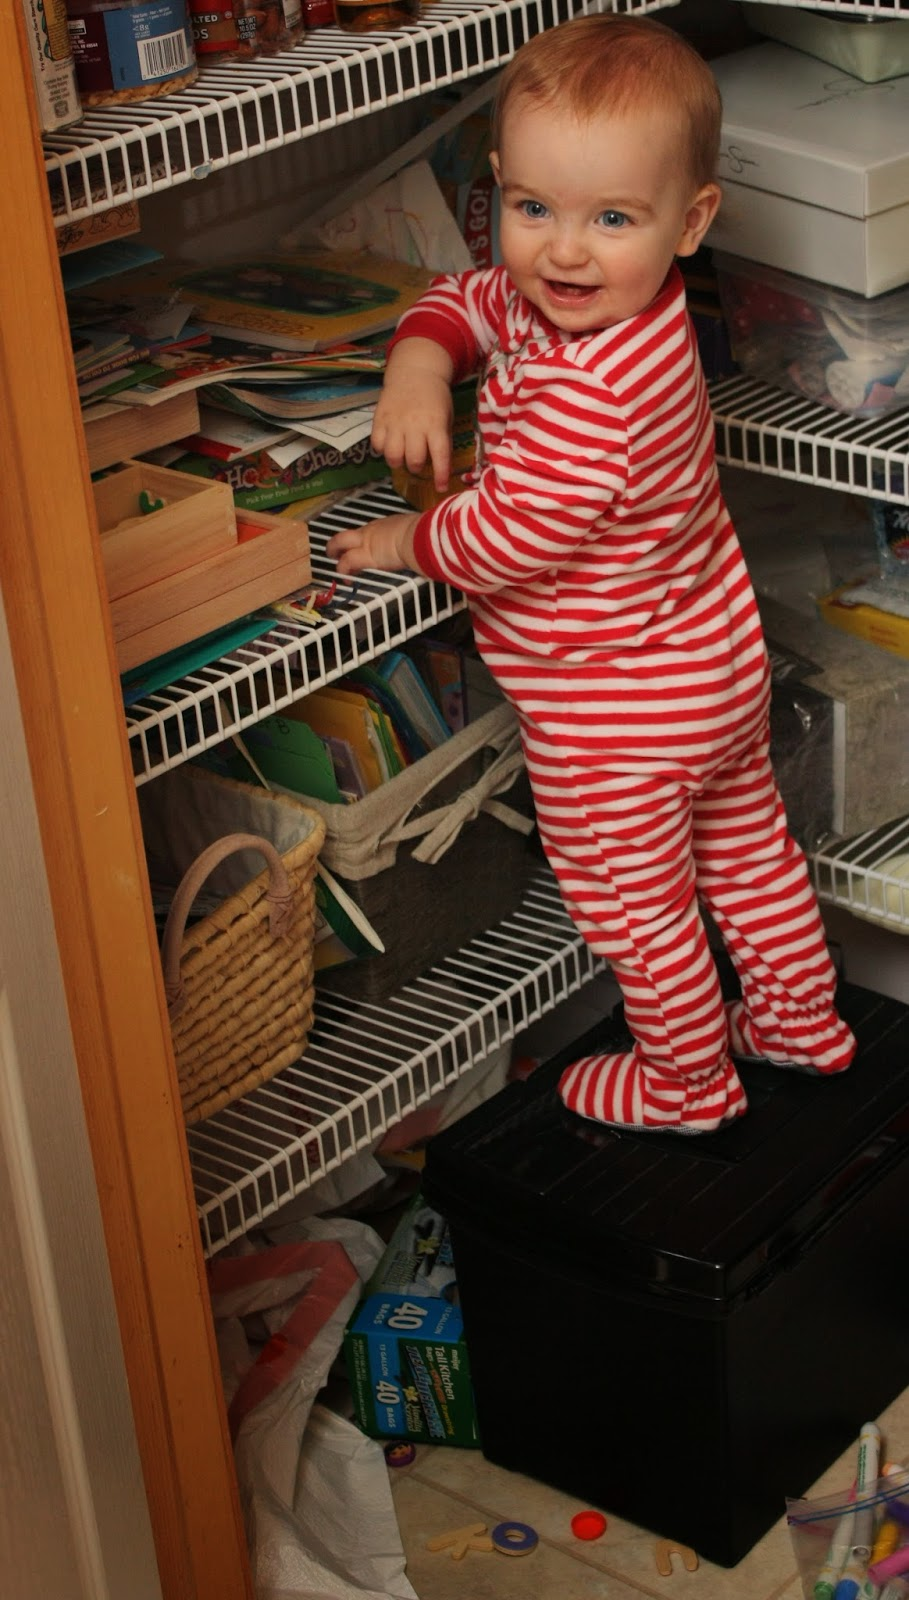 He can scale shelves and destroy my pantry, but he can't walk?!?